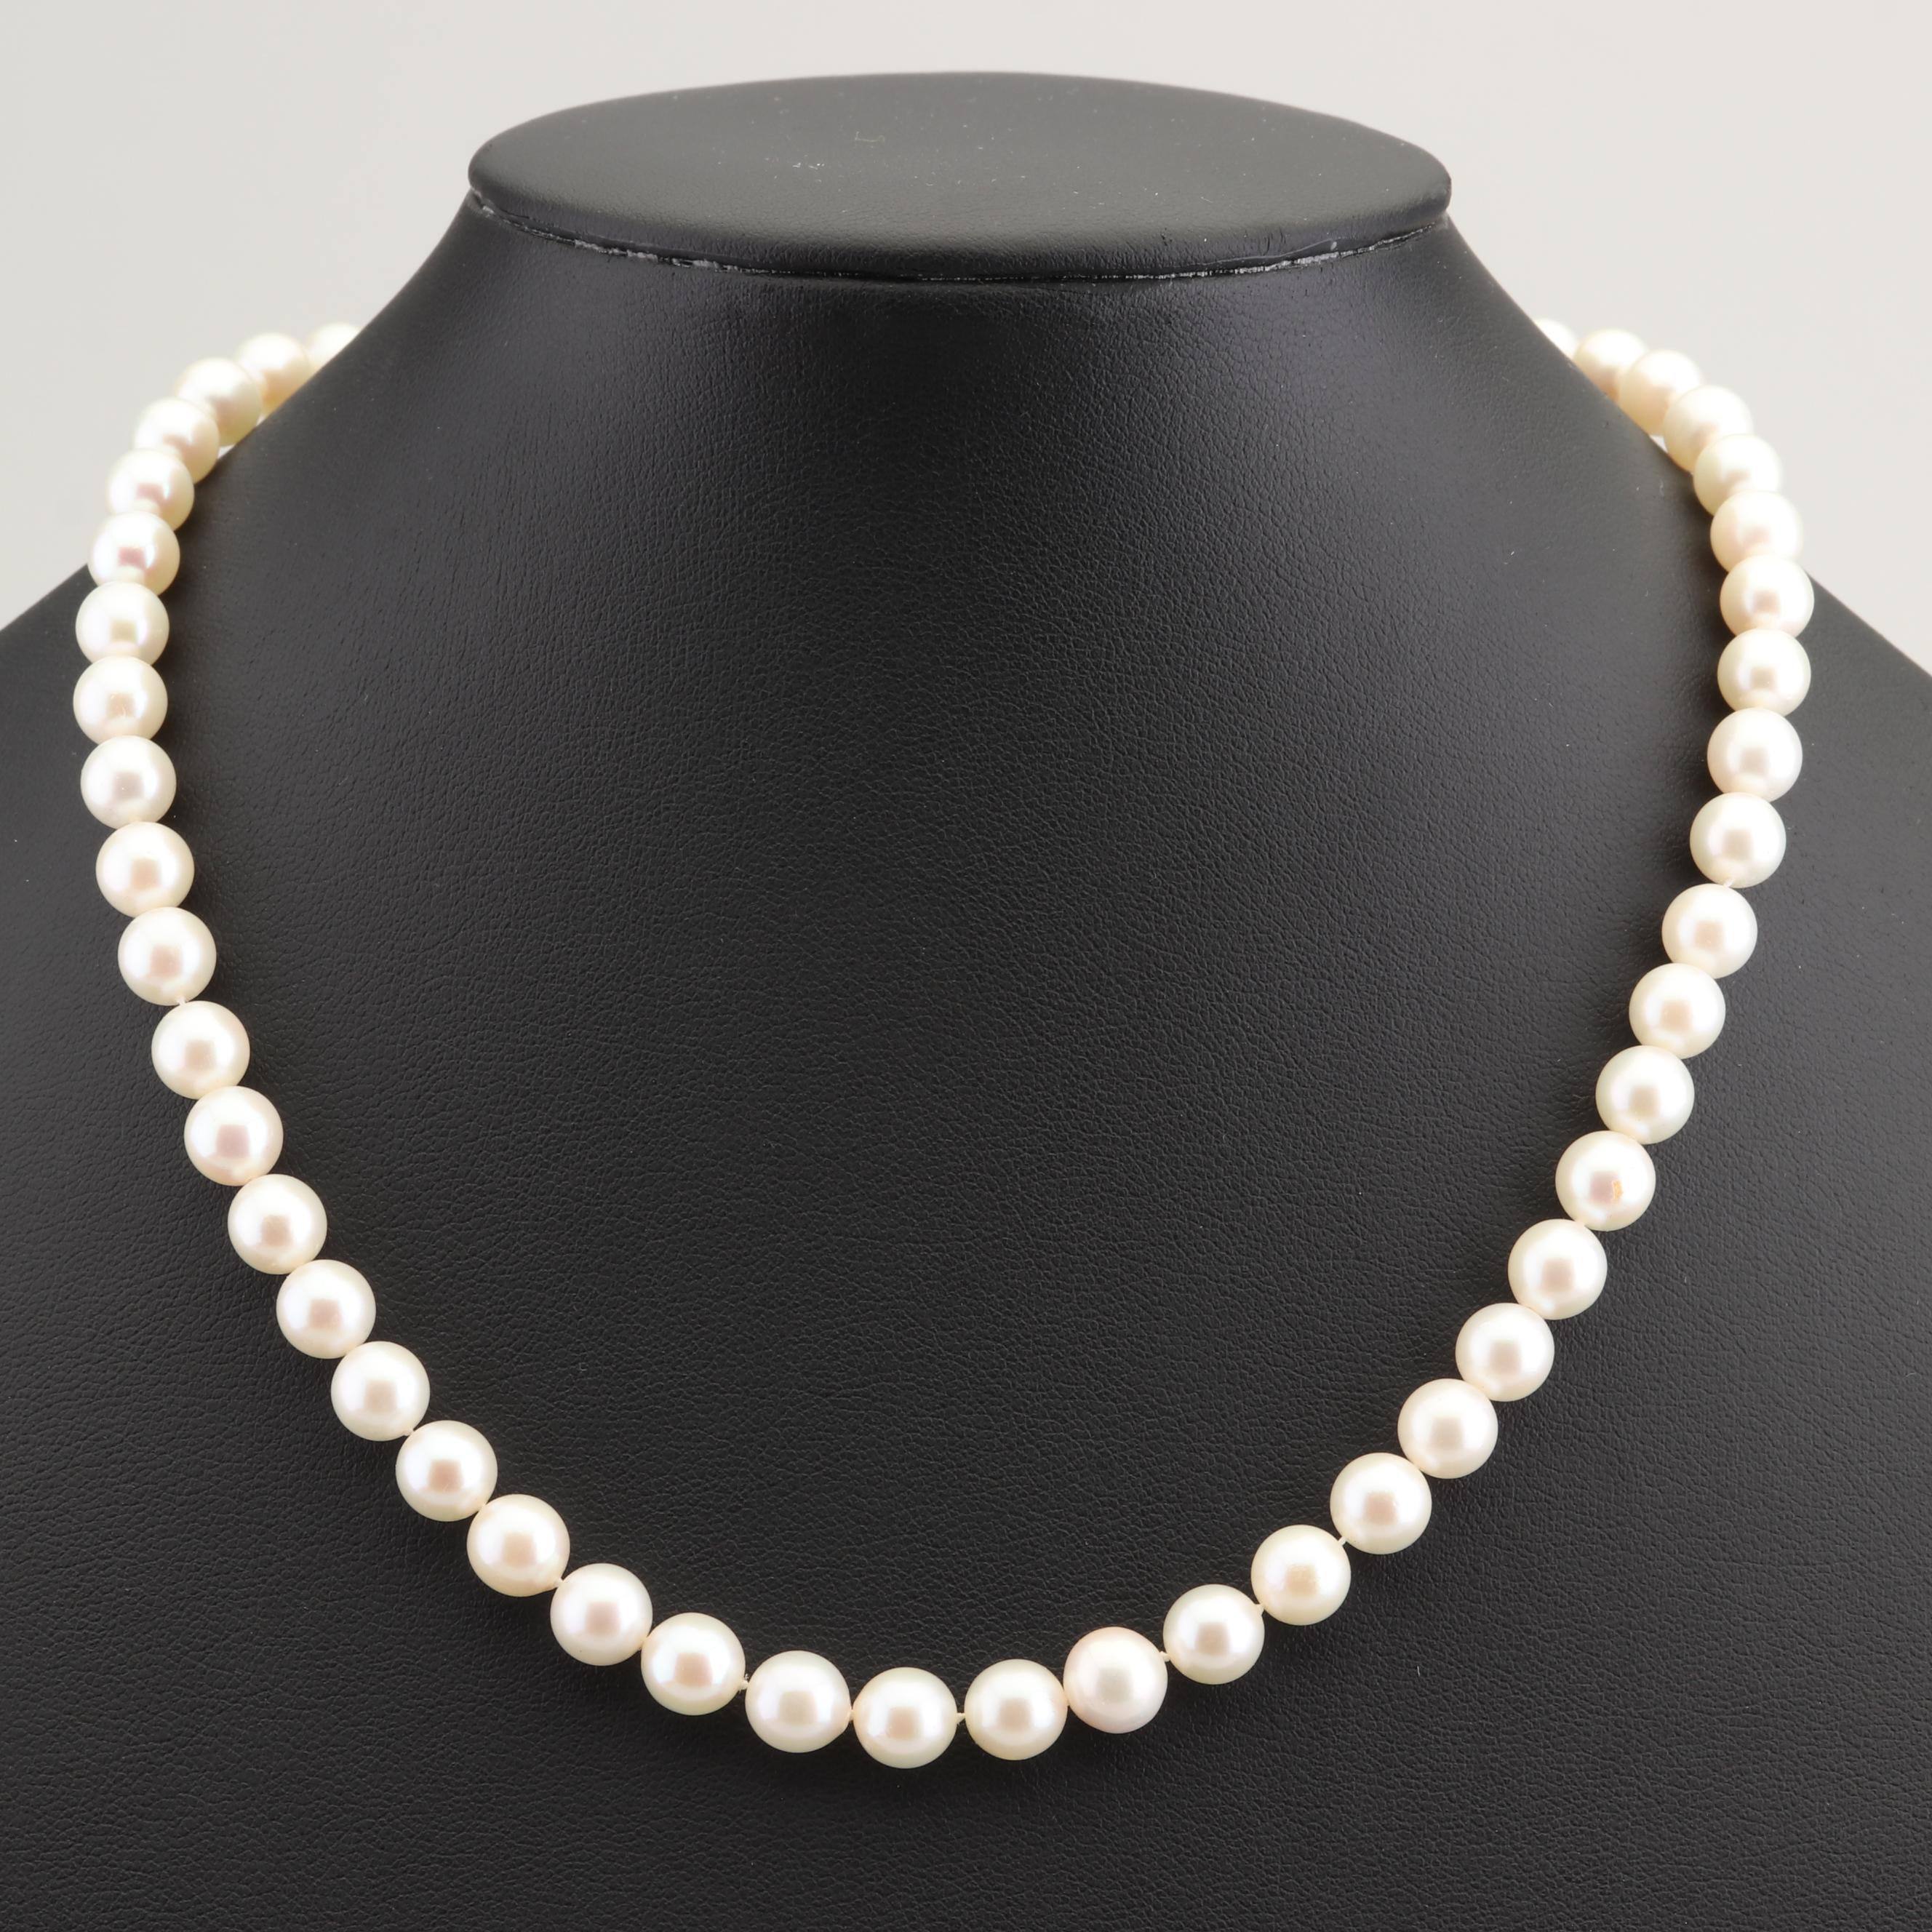 Mikimoto Cultured Pearl Necklace with 14K Yellow Gold Clasp